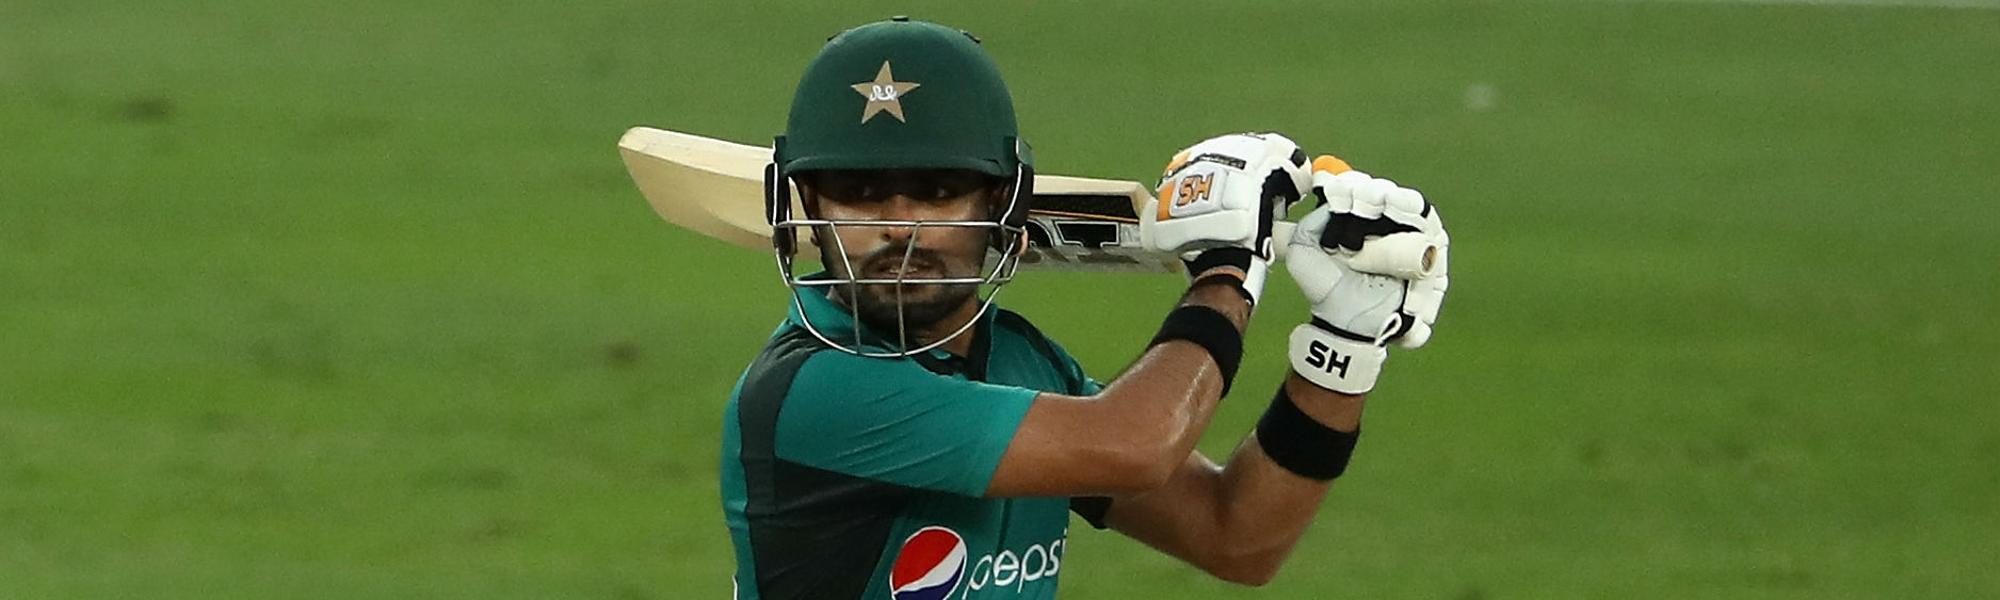 Babar Azam has been in good form in T20 cricket